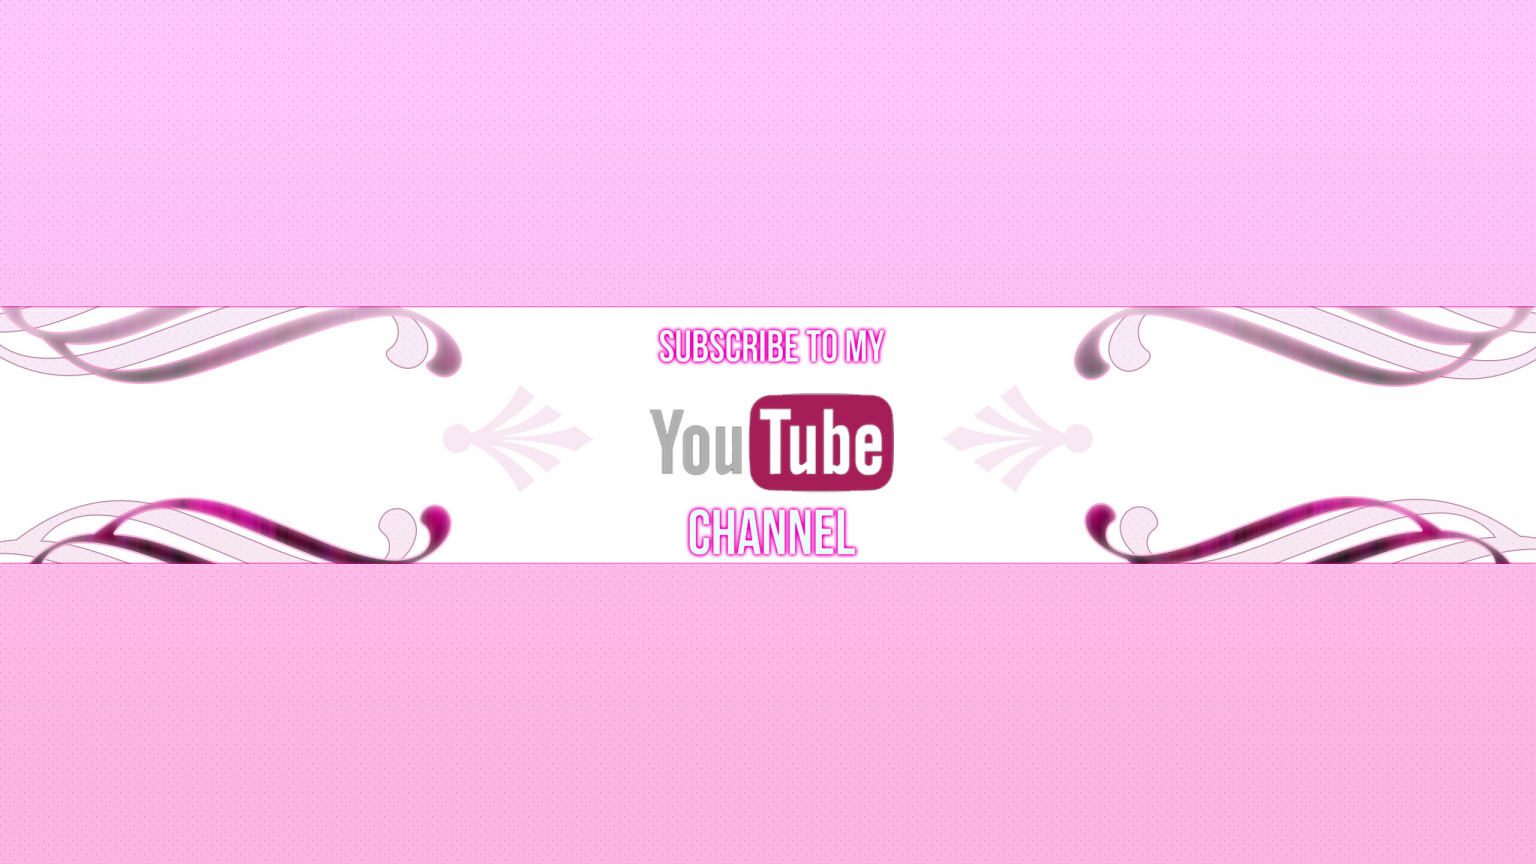 Free Download Girly Youtube Channel Art 2560x1440 For